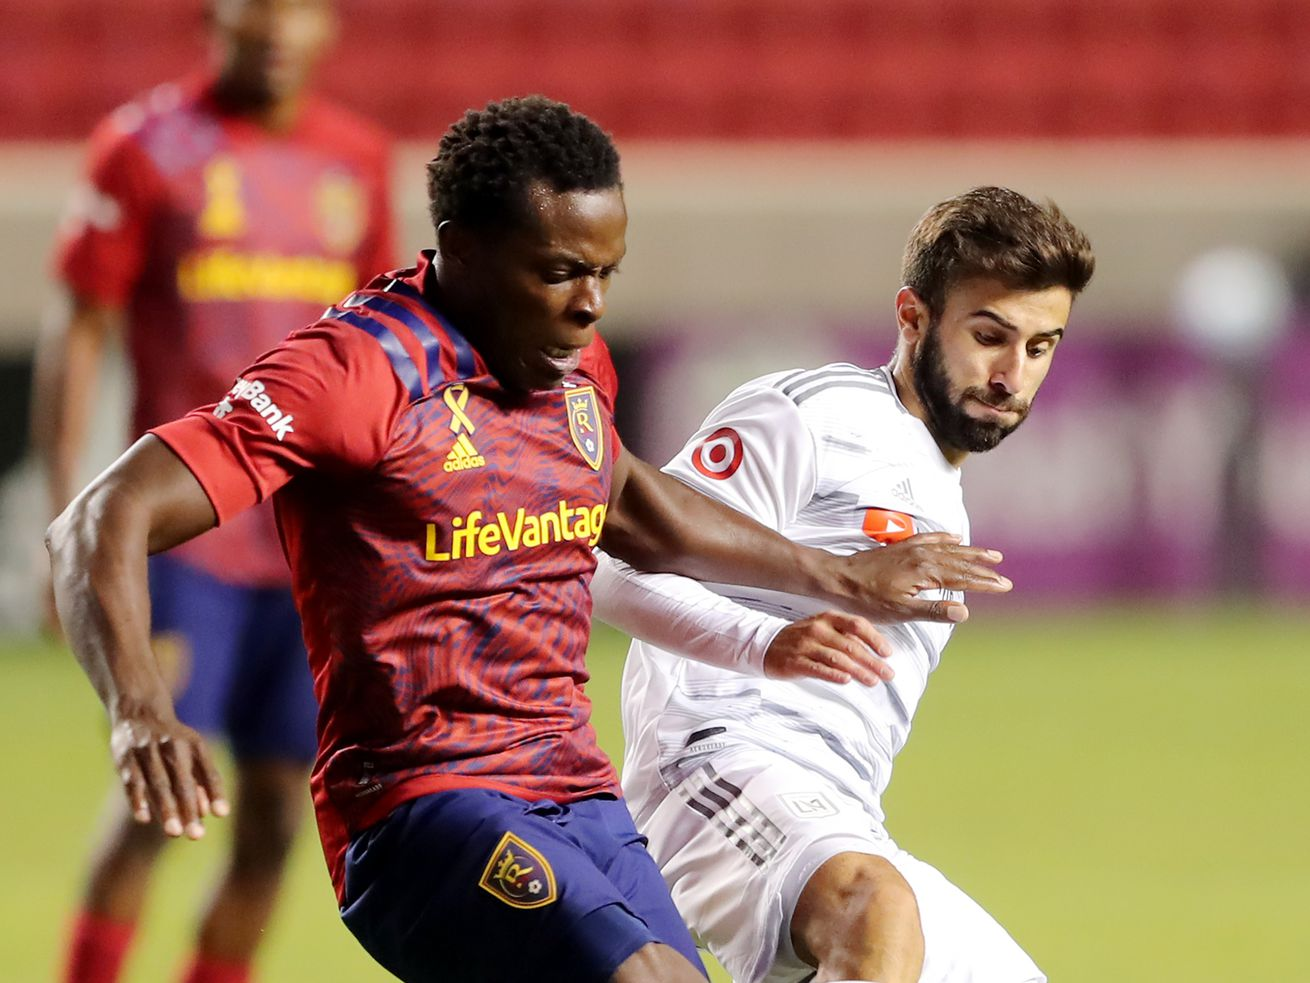 Real Salt Lake still has hope for a playoff berth, but there's no room for error with 3 matches remaining